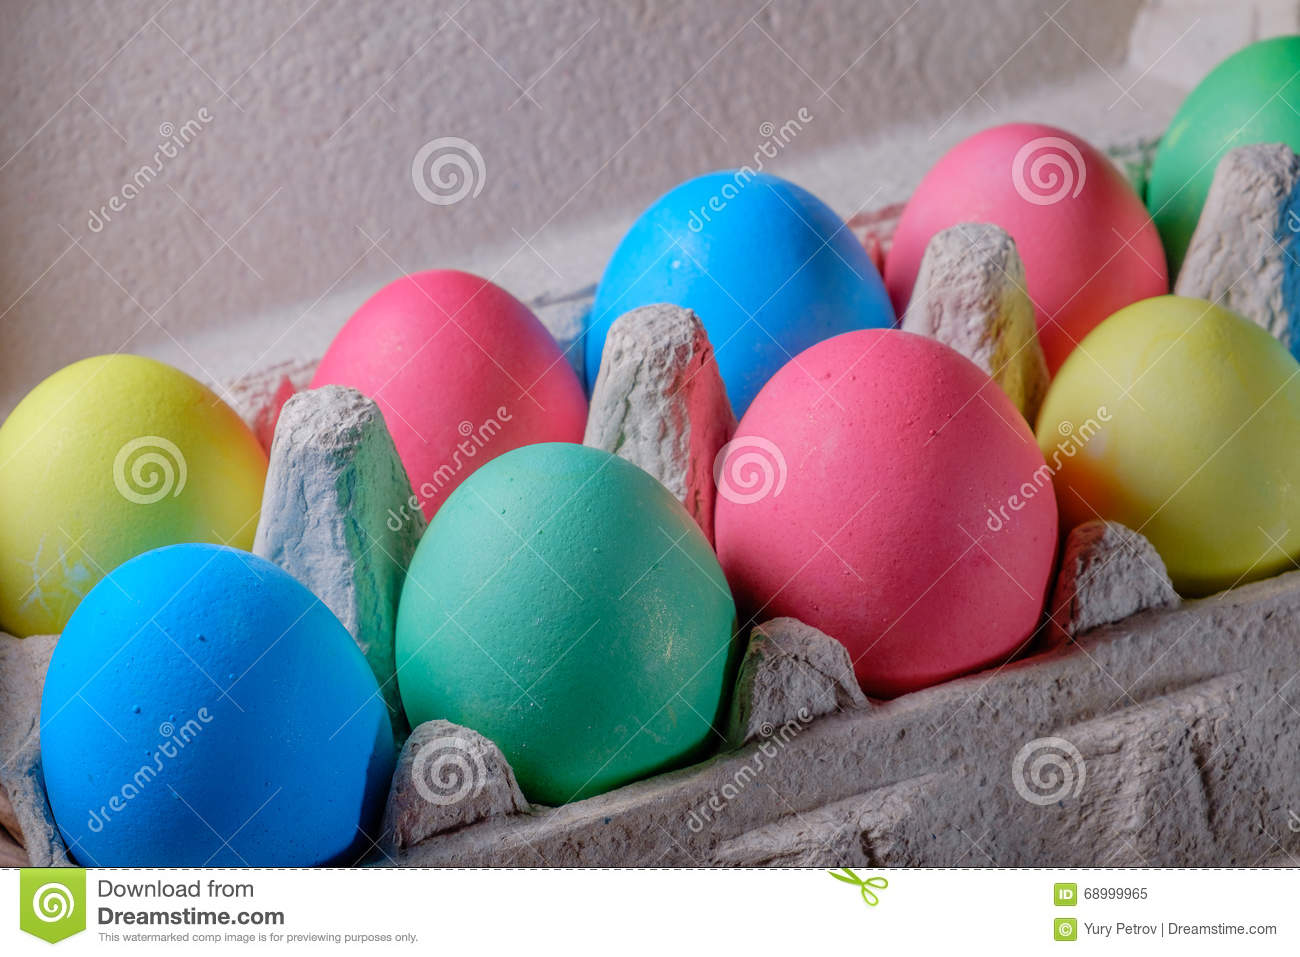 Beautiful Easter eggs of different colors